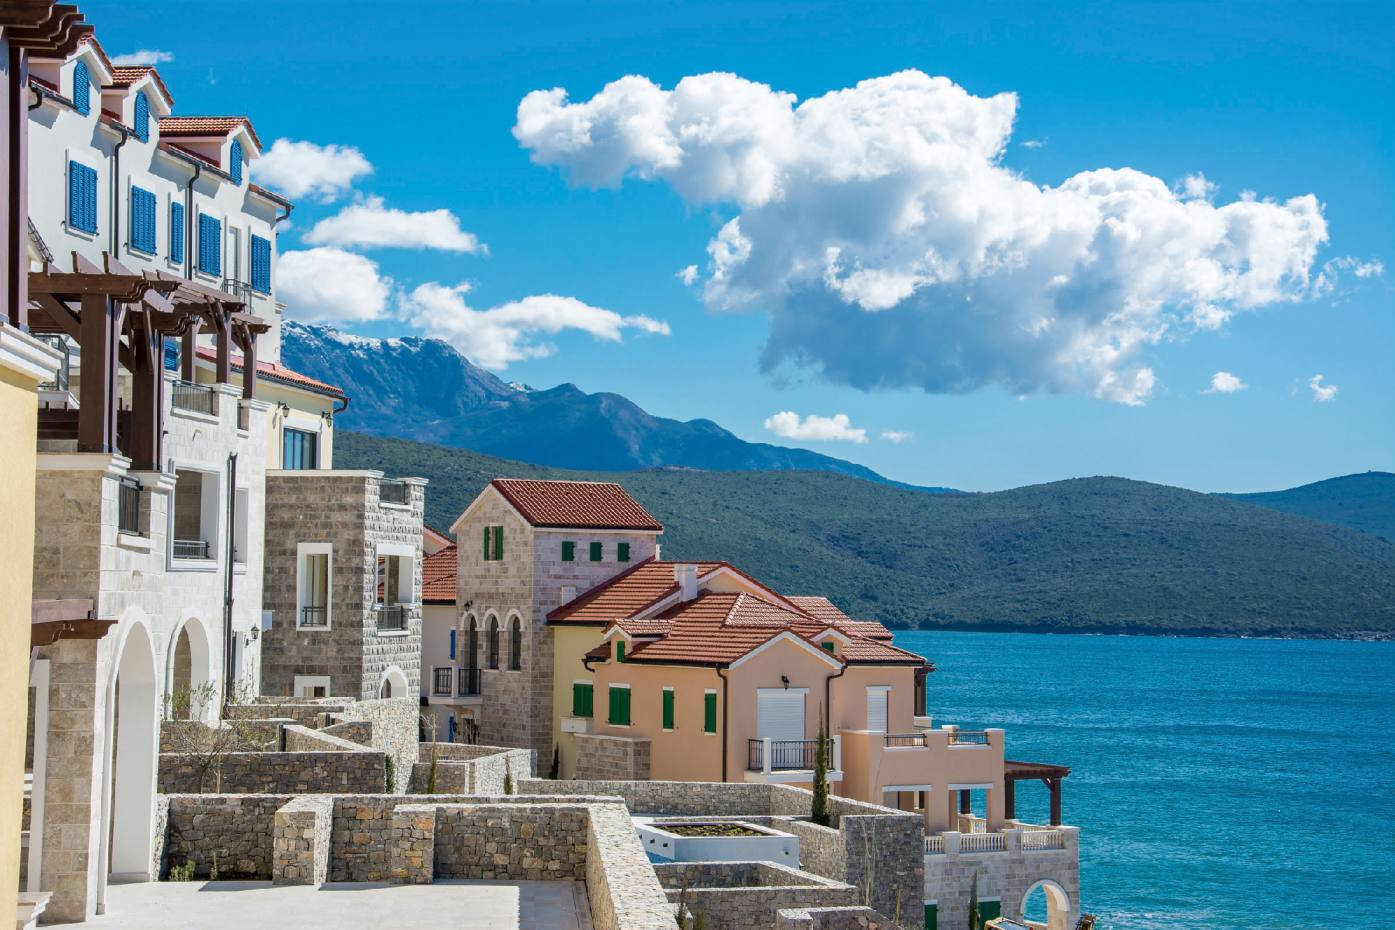 The Chedi is launching this month at Montenegro's Luštica Bay complex